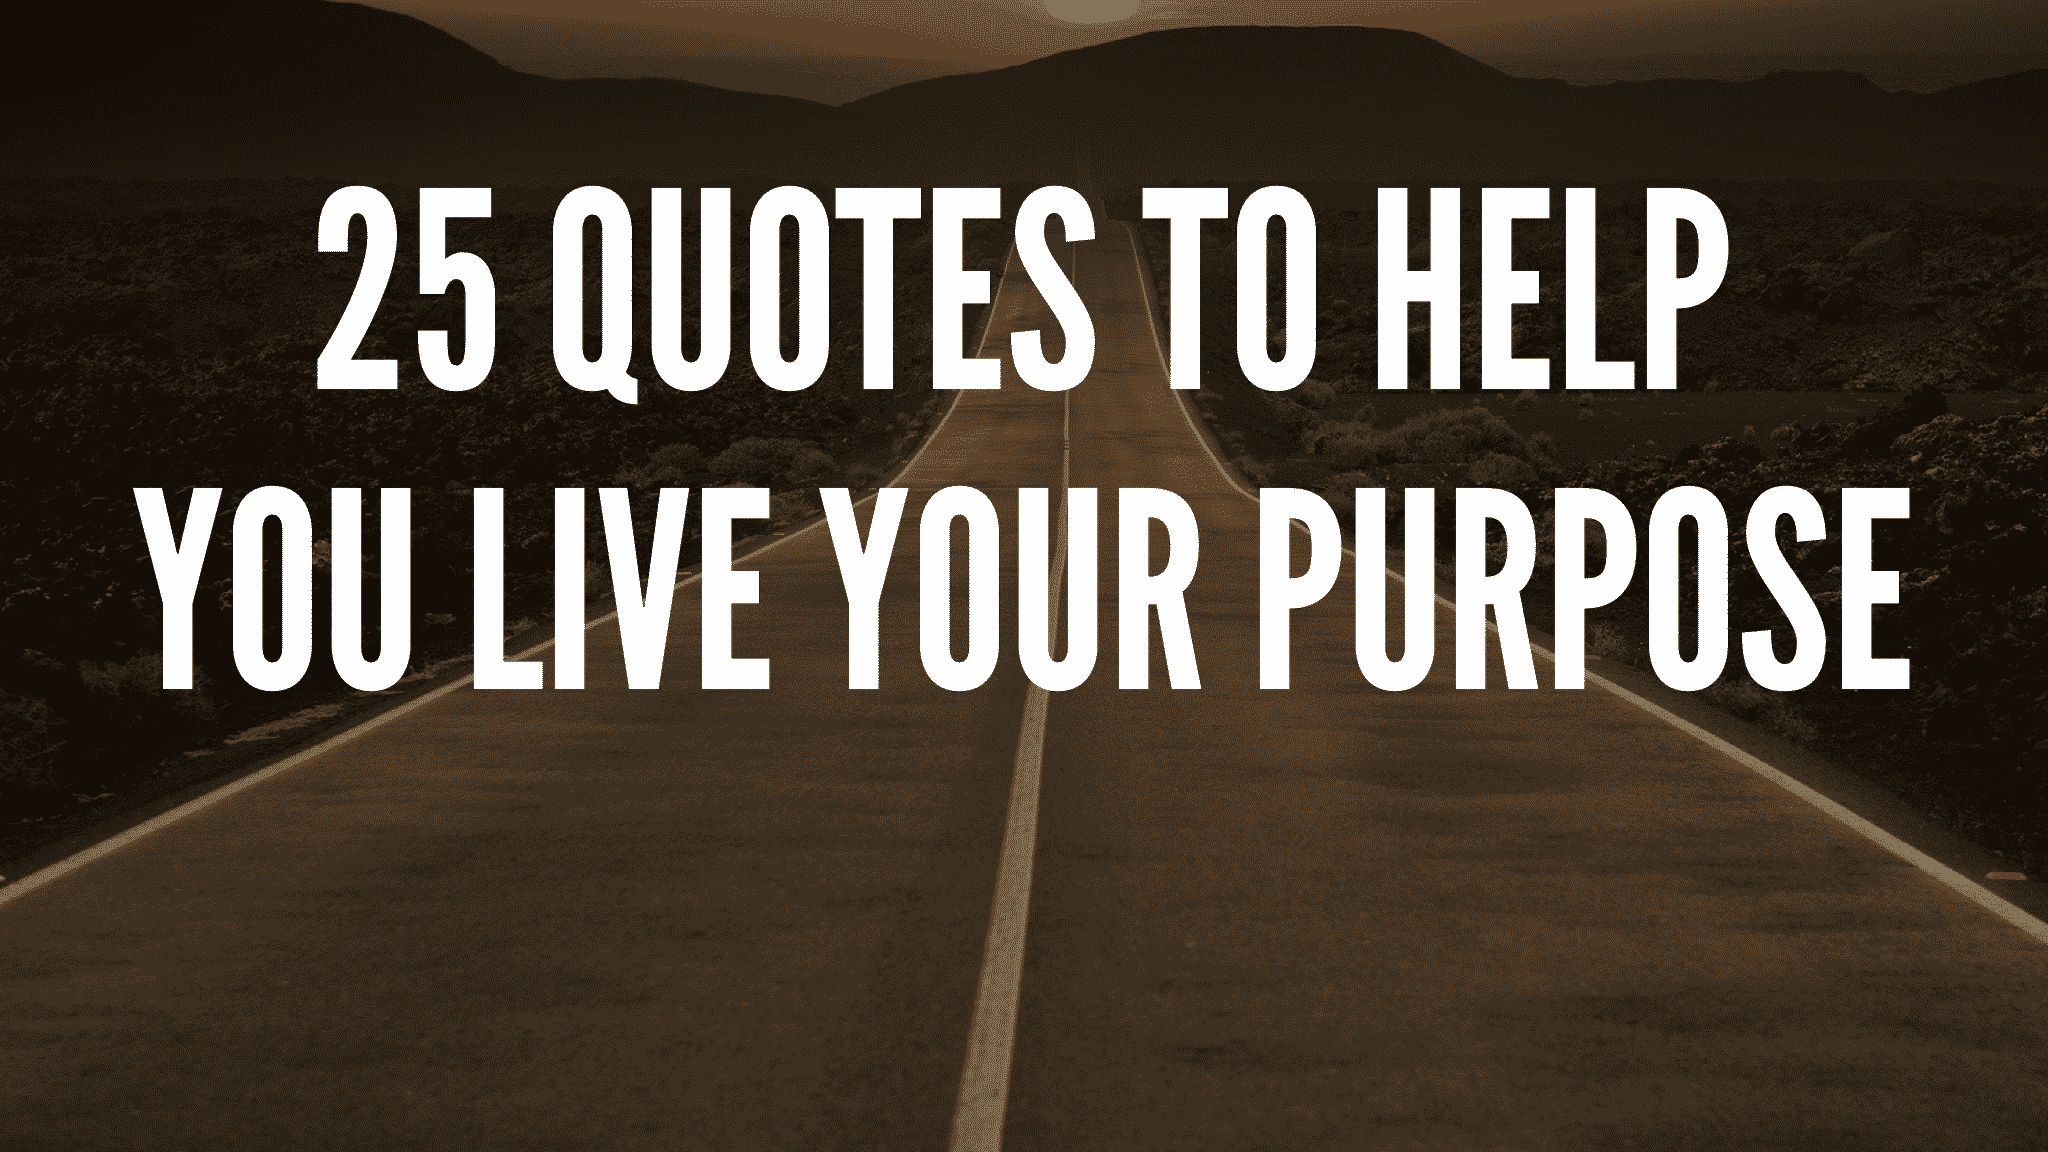 Live Your Purpose Quotes